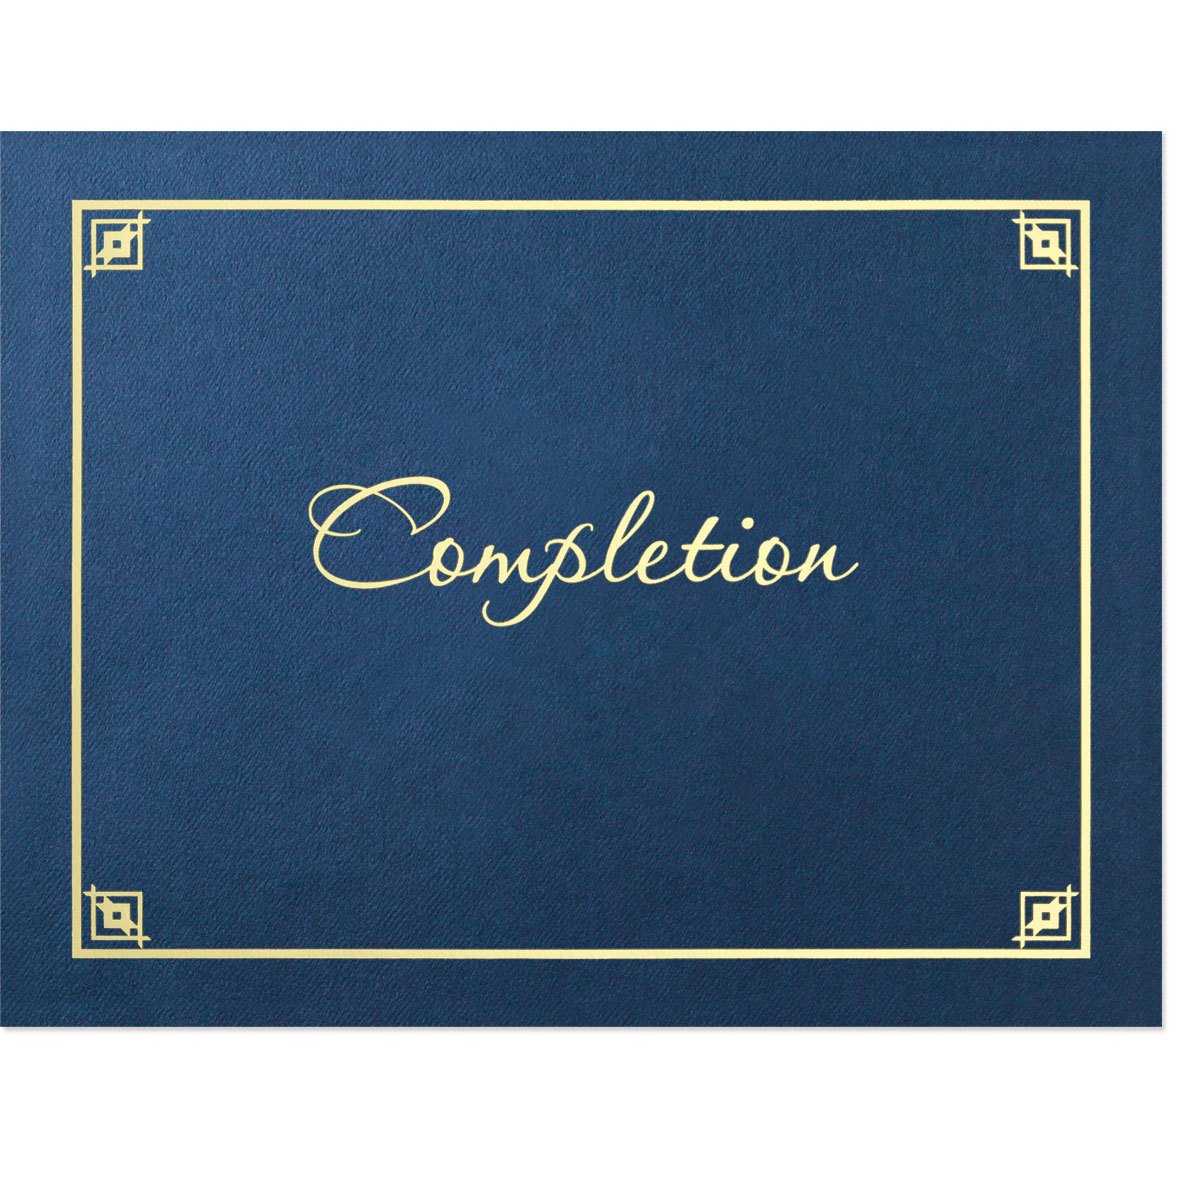 Completion Certificate Jackets